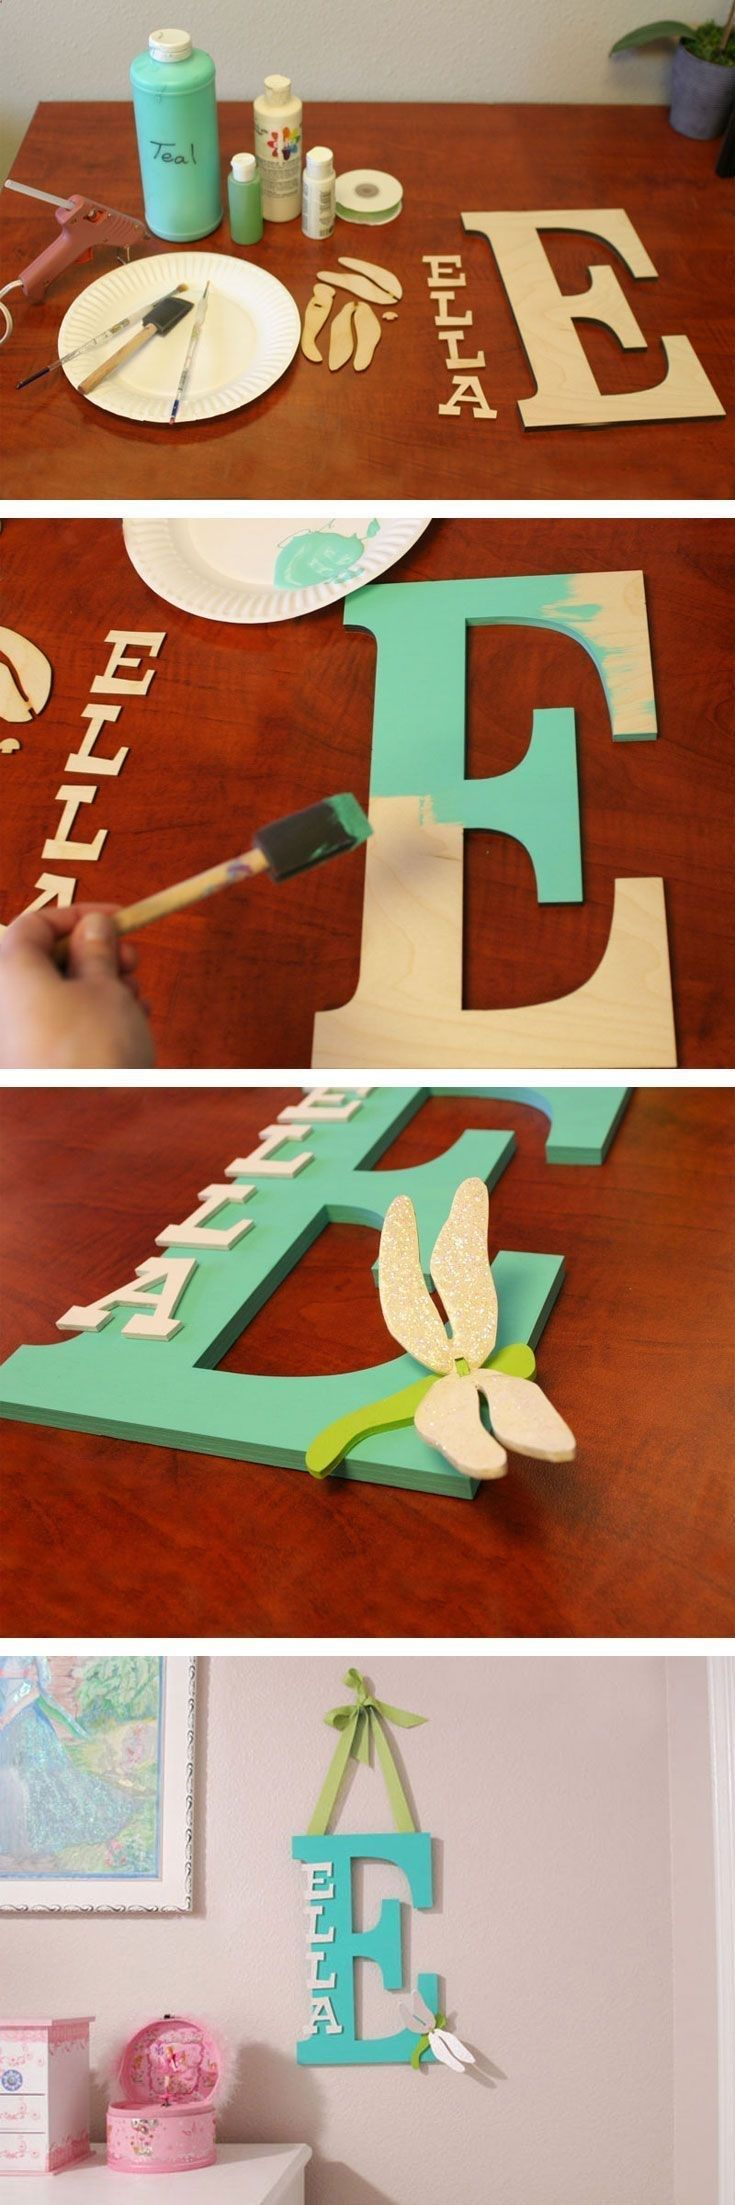 Diy letter ideas u tutorials front doors decoration and doors